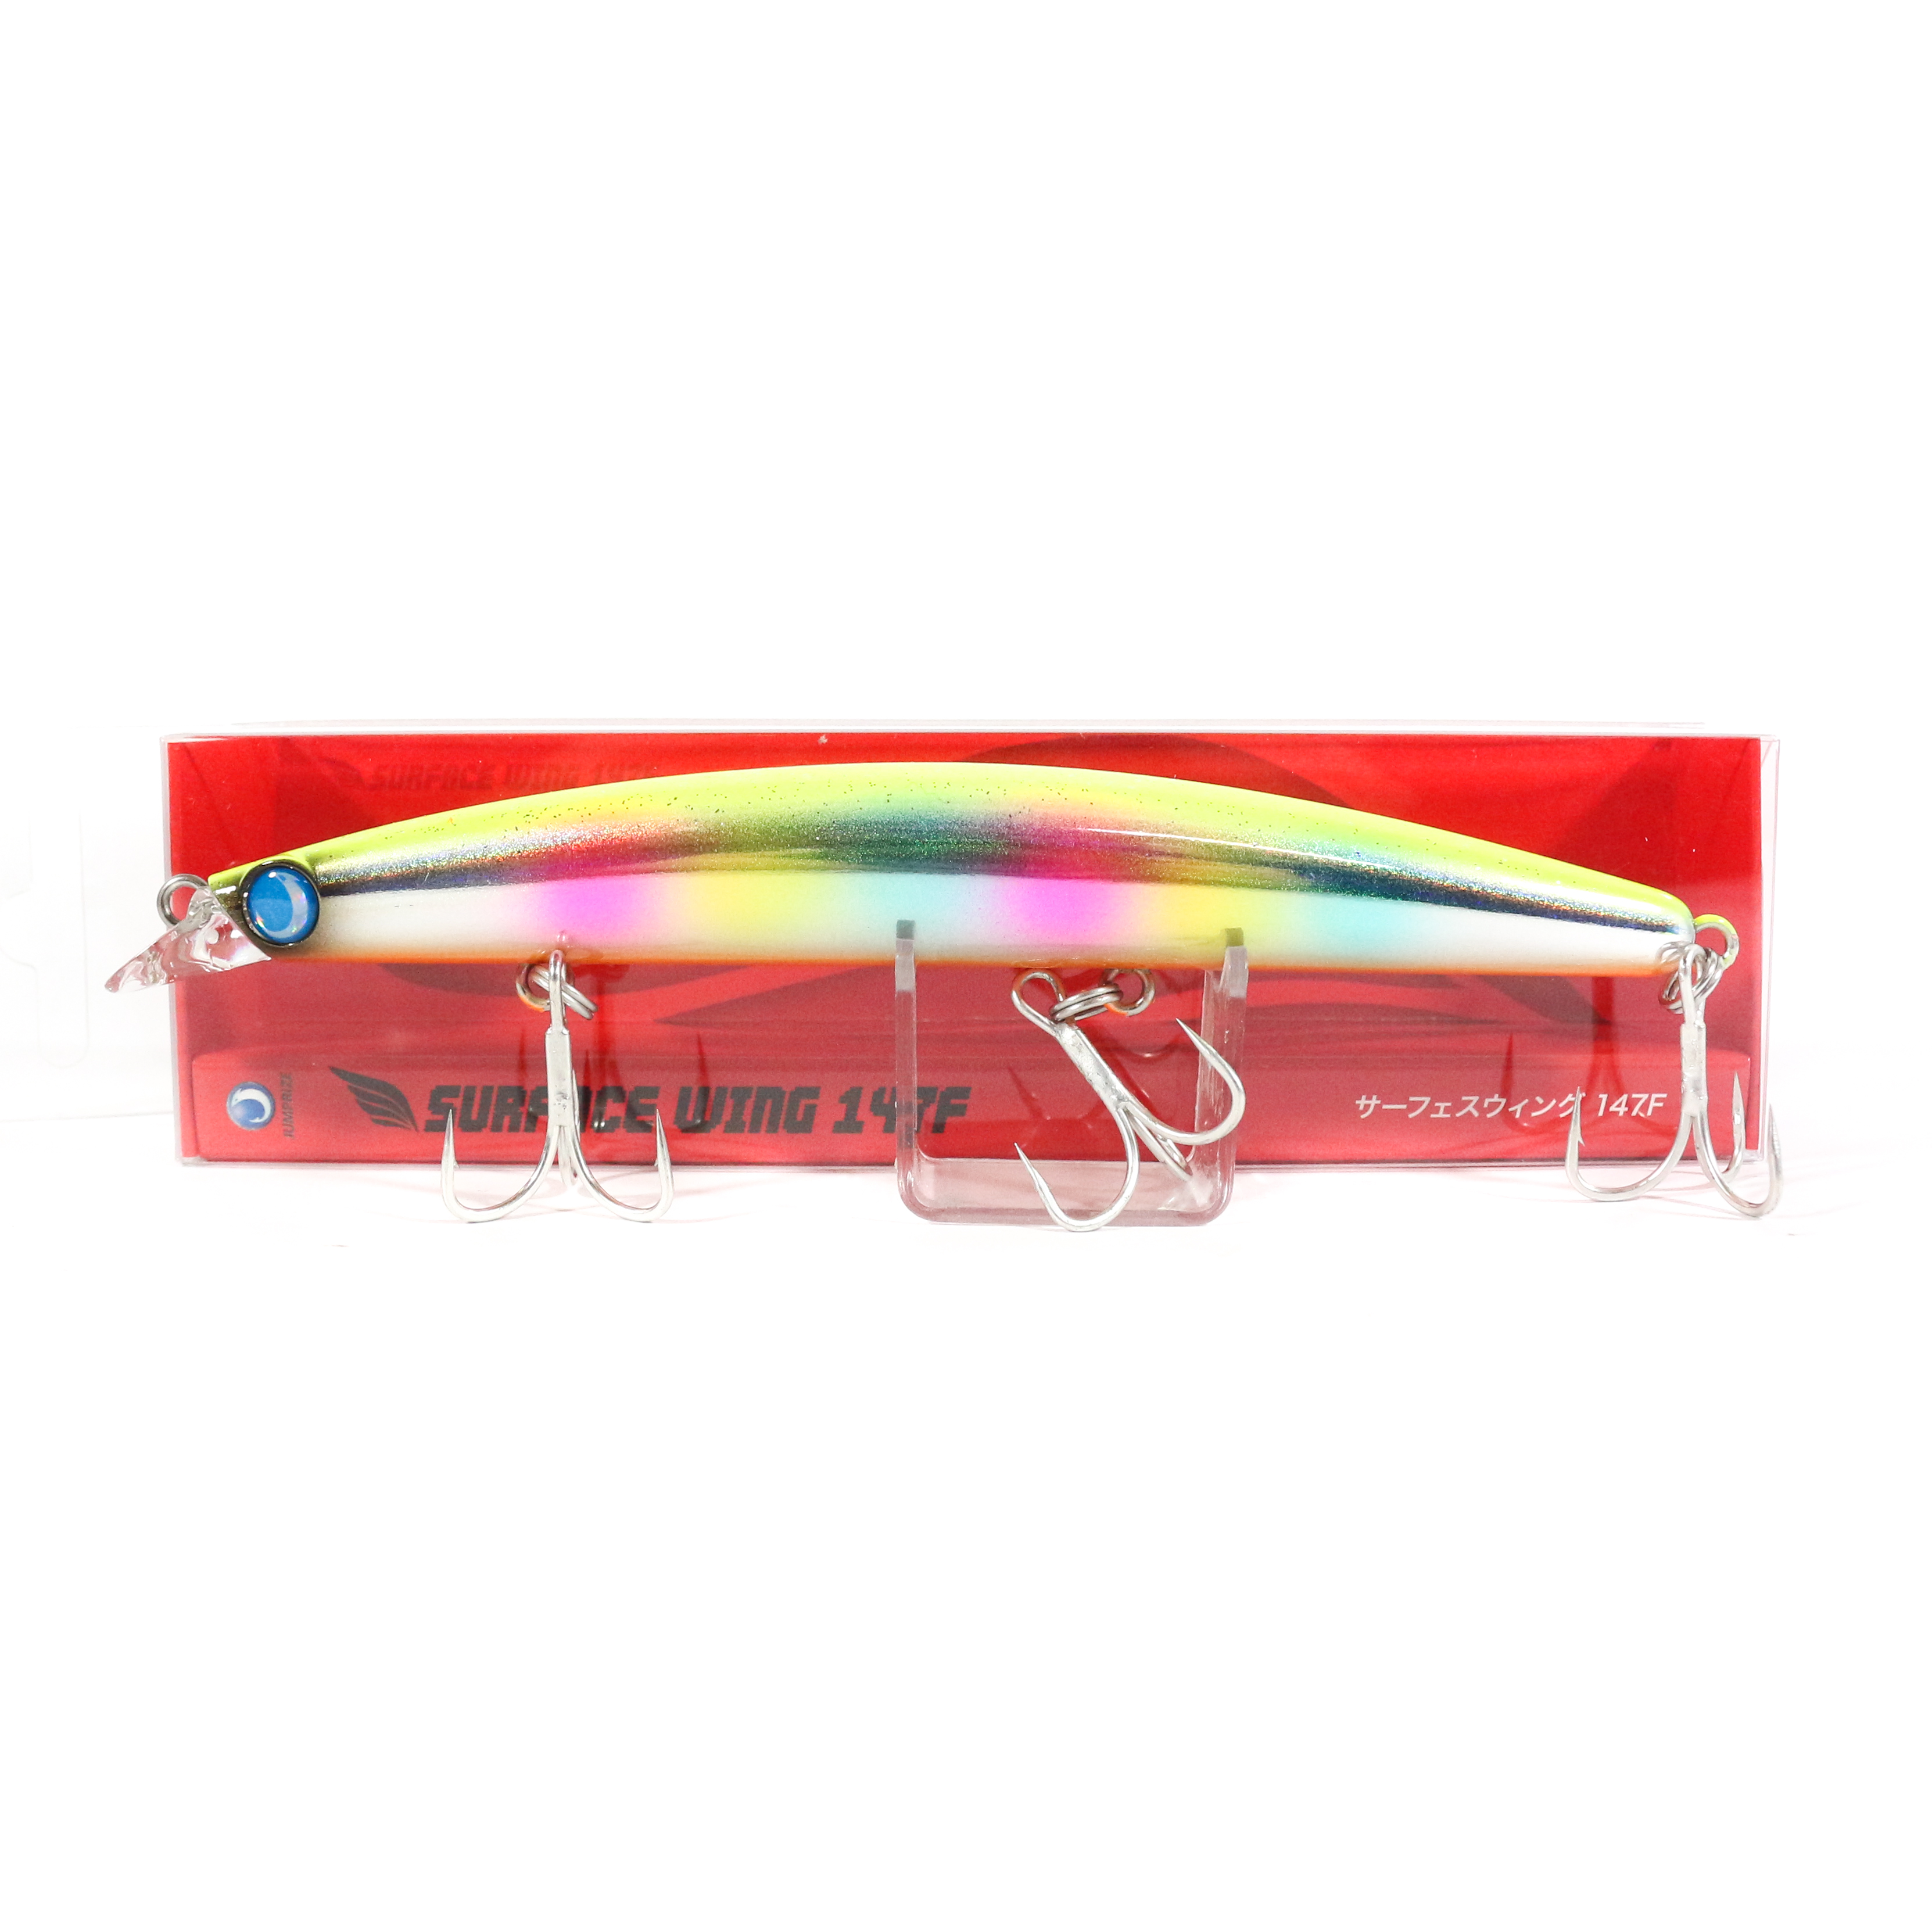 Sale Jumprize Surface Wing 147F Floating Lure 503 (3908)